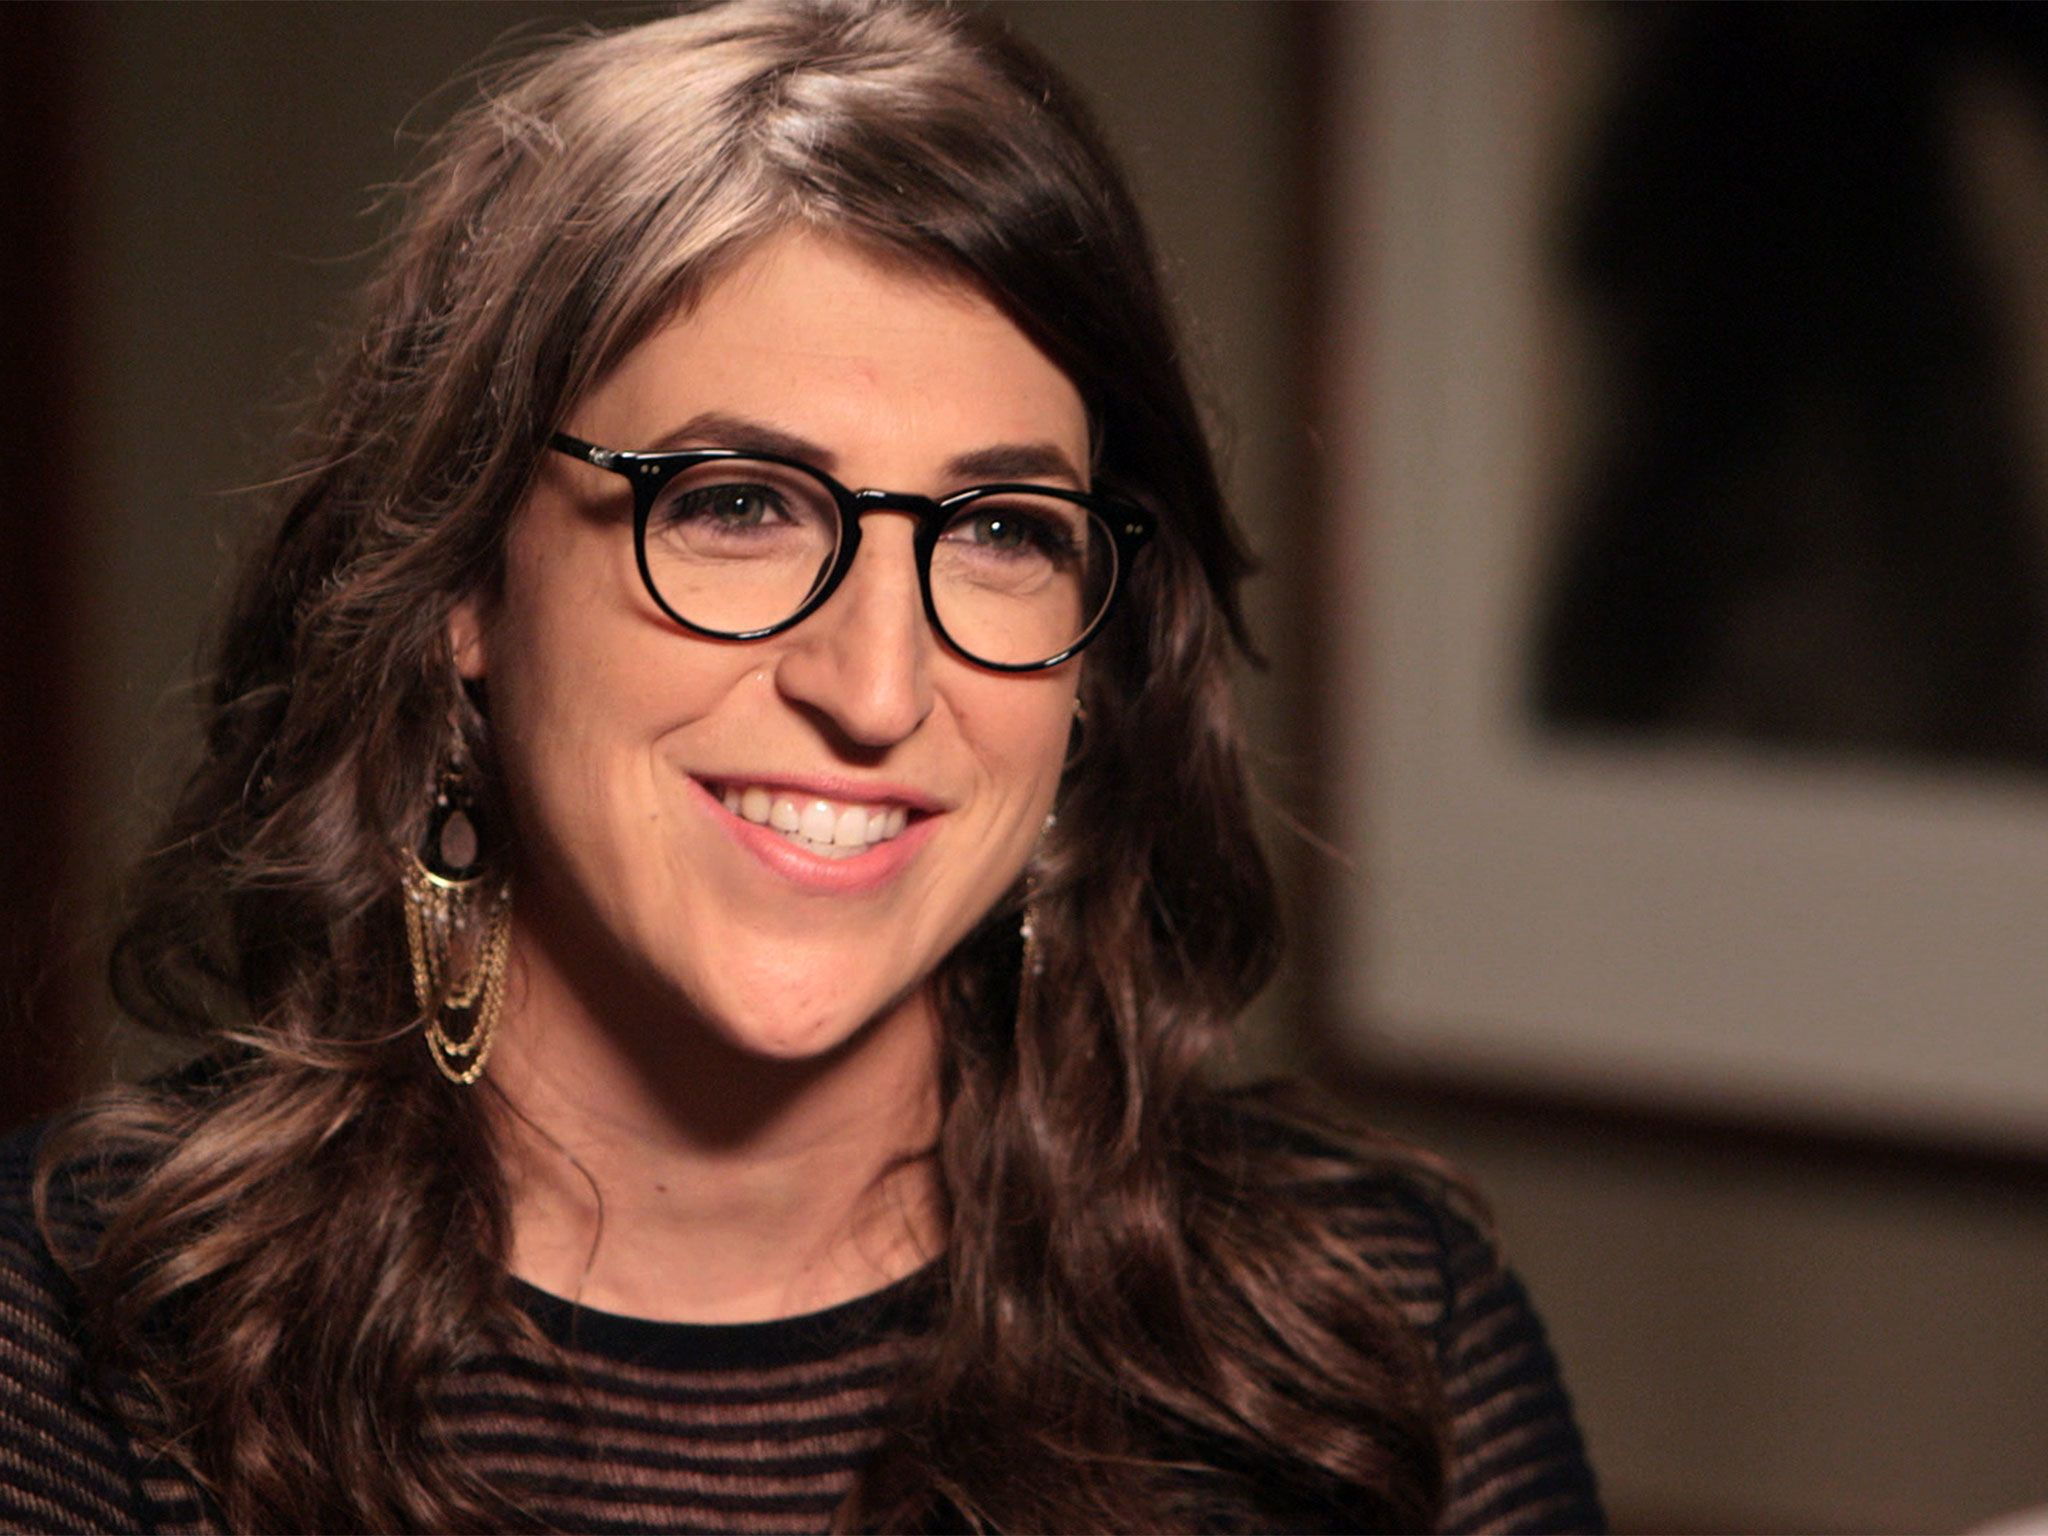 New York, N.Y.- Mayim Bialik during her interview with Neil deGrasse Tyson. This image is from... [Photo of the day - دسامبر 2016]